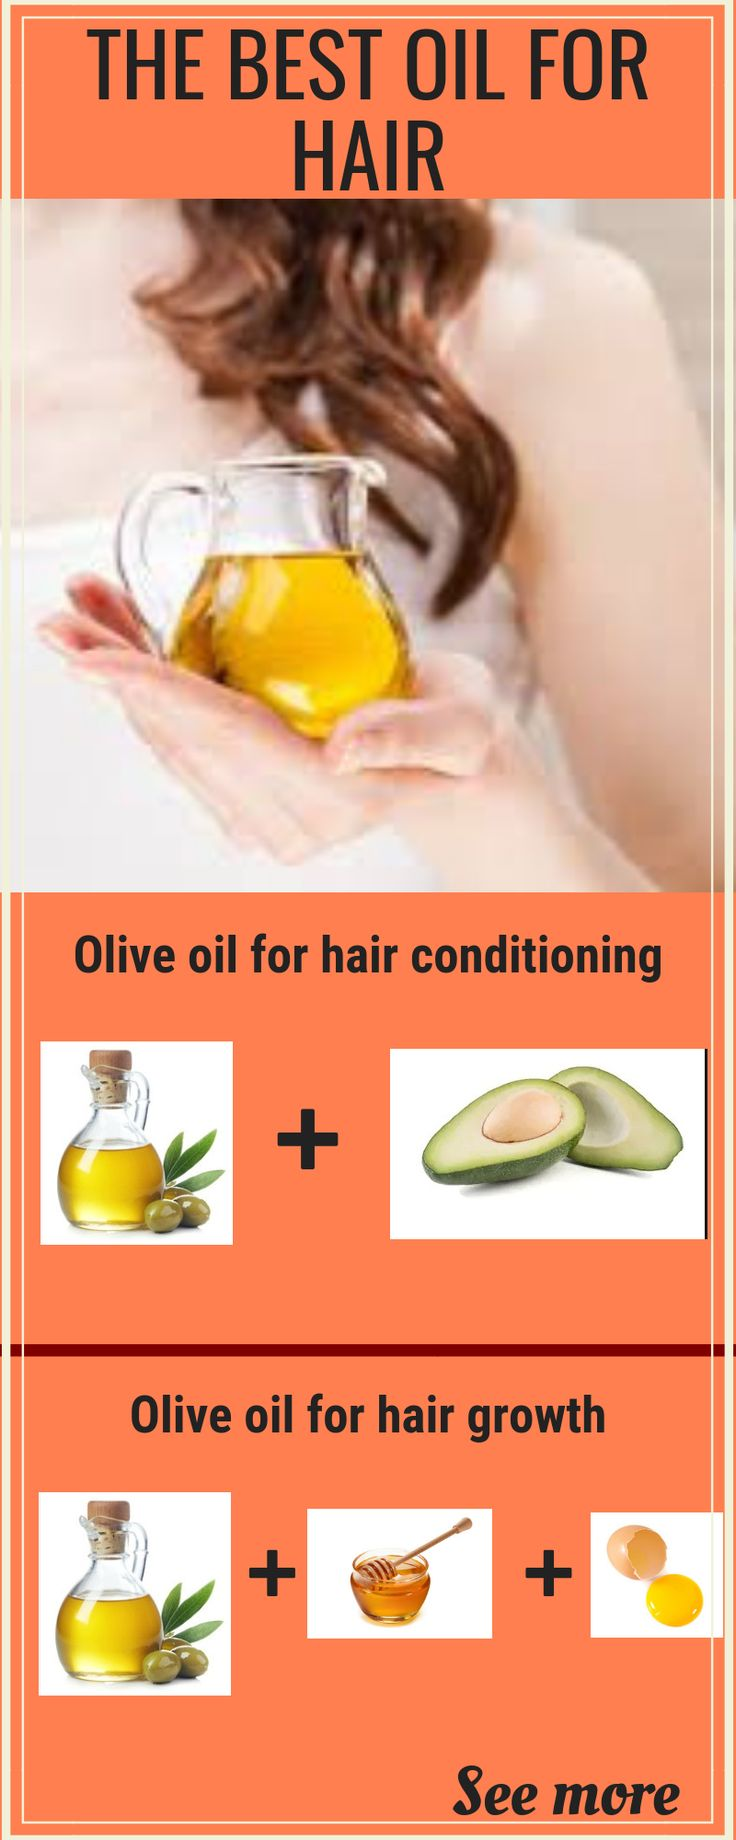 How To Use Olive Oil On Hair To Get Maximum Benefits